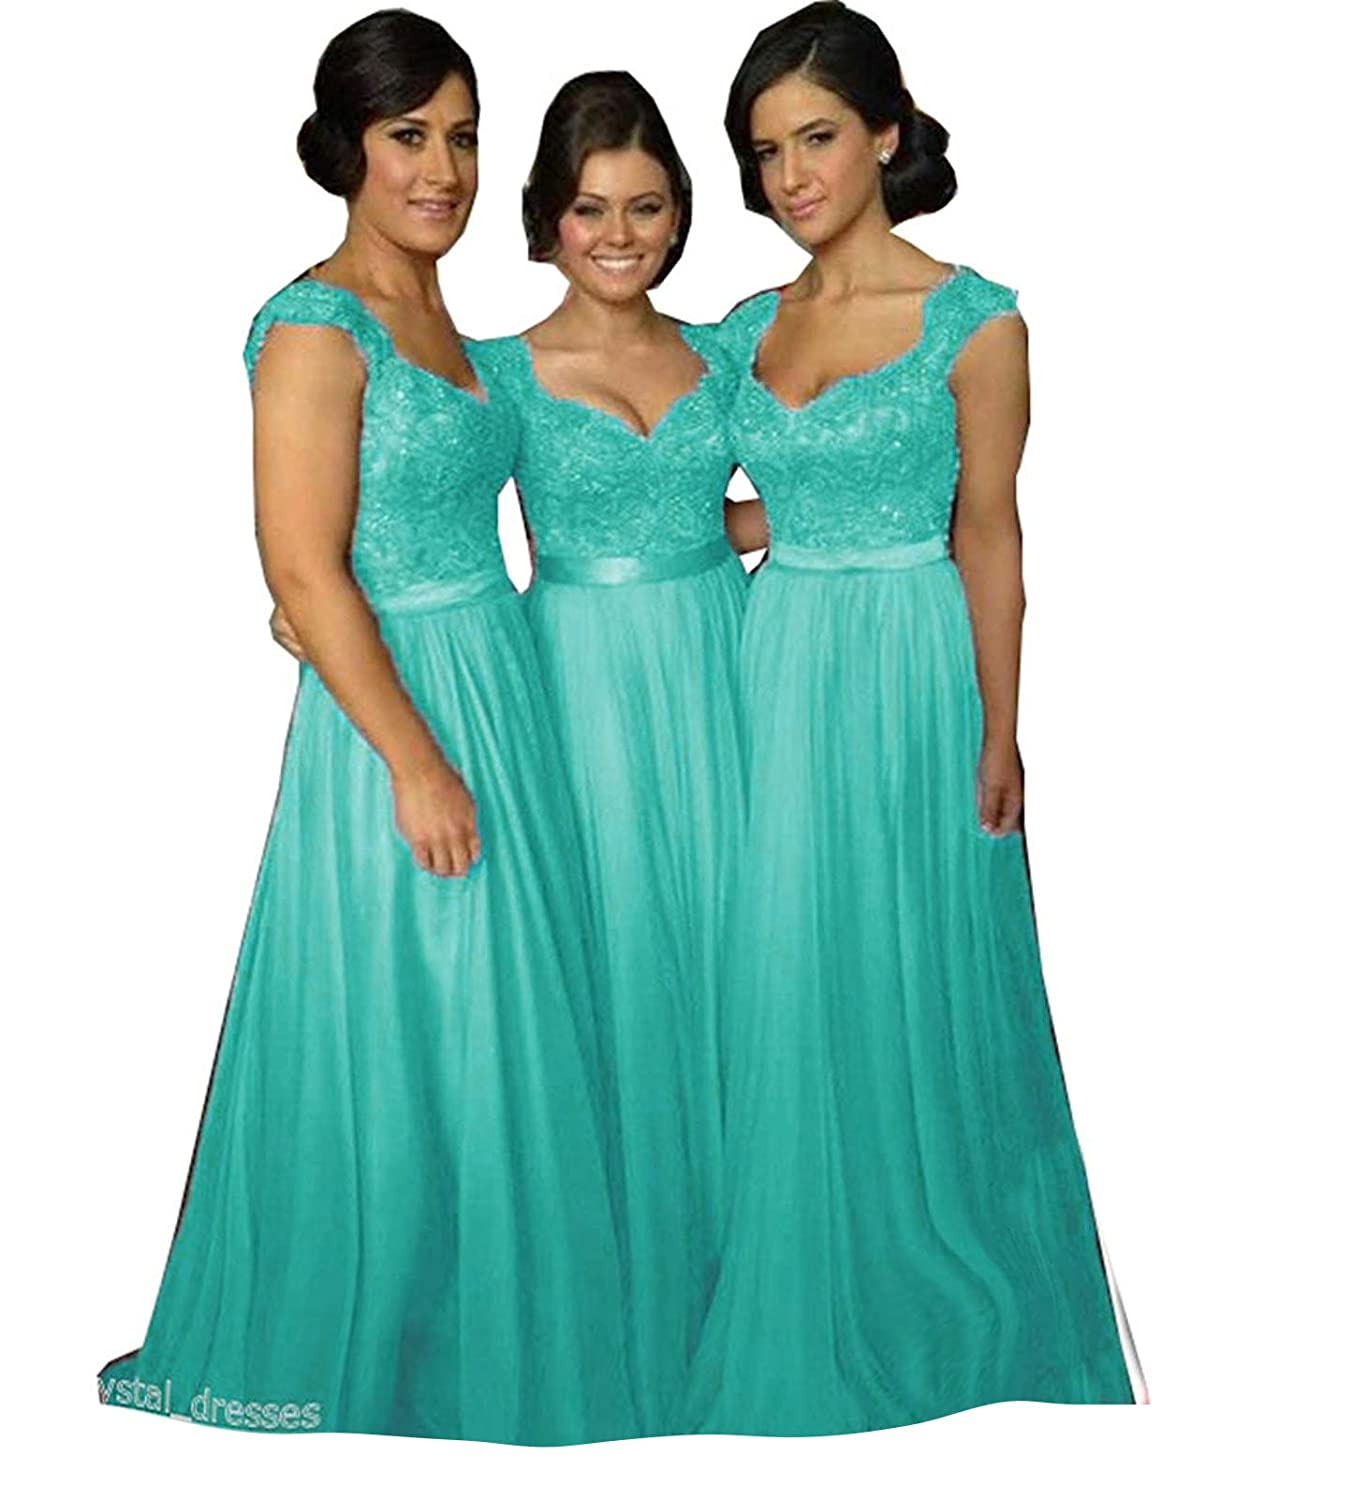 Turquoise Fanciest Women' Cap Sleeve Lace Bridesmaid Dresses Long Wedding Party Gowns